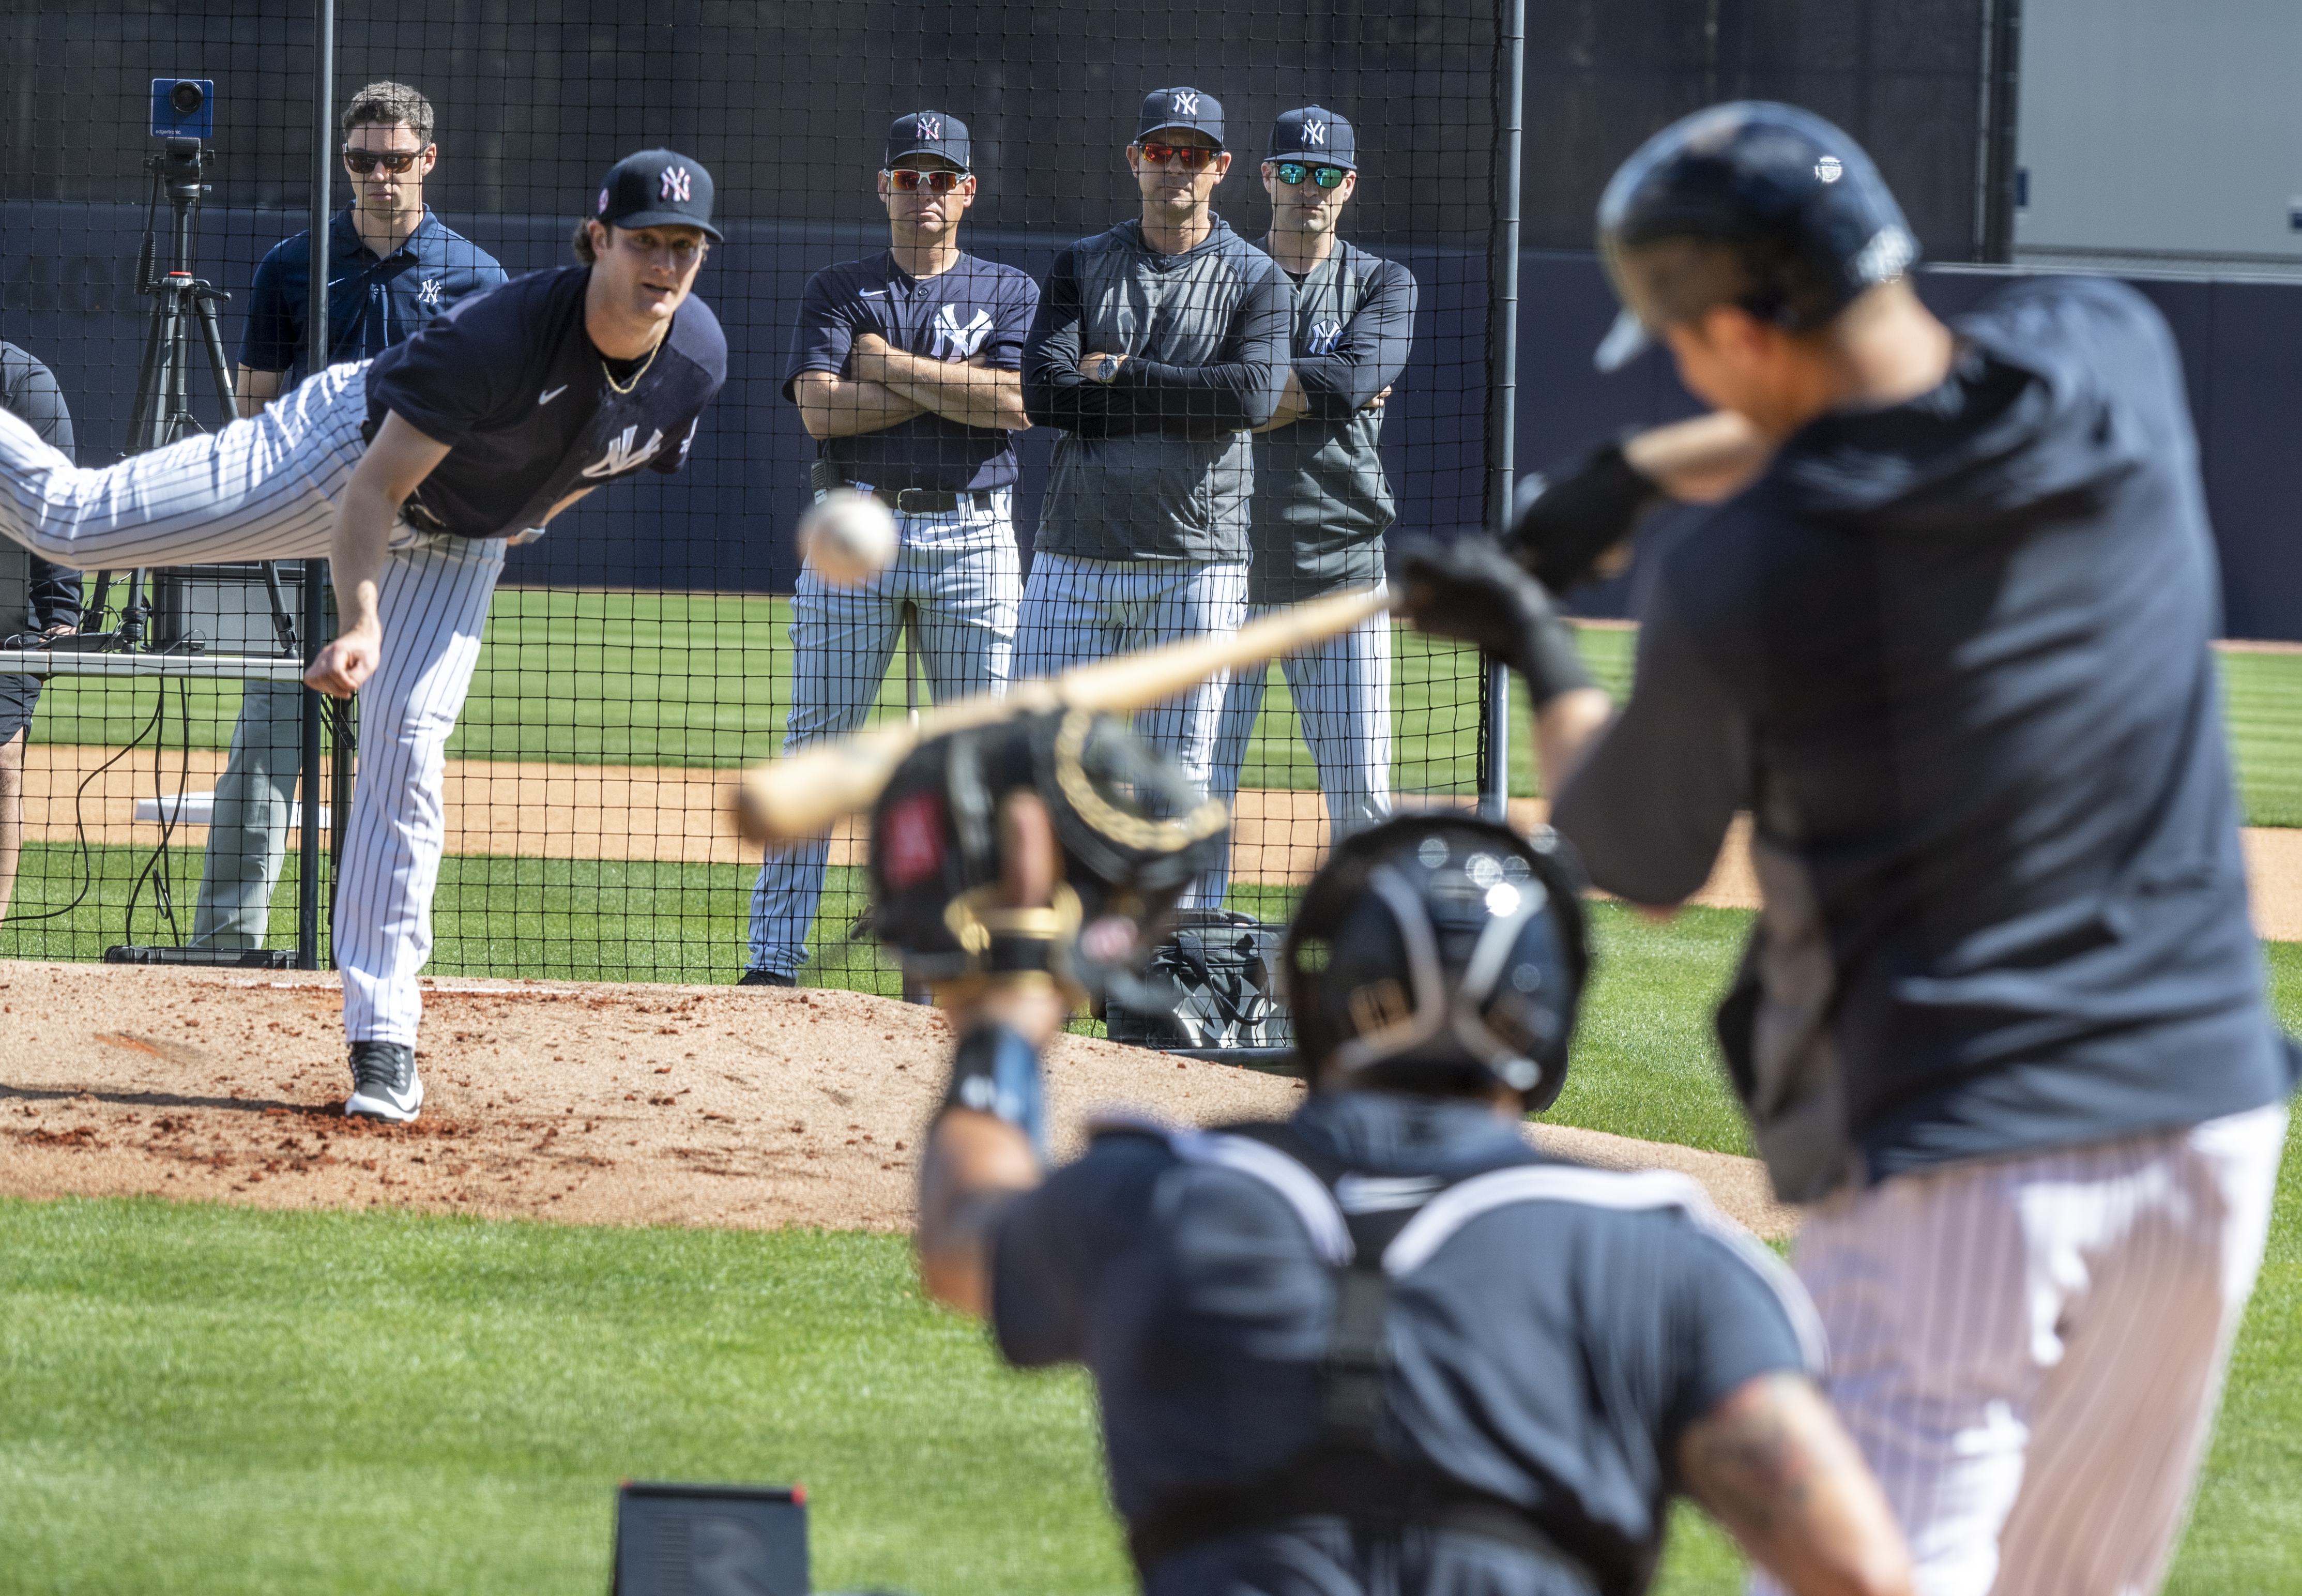 New York Yankees pitcher Gerrit Cole, manager Aaron Boone, and coach Carlos Mendoza at spring training